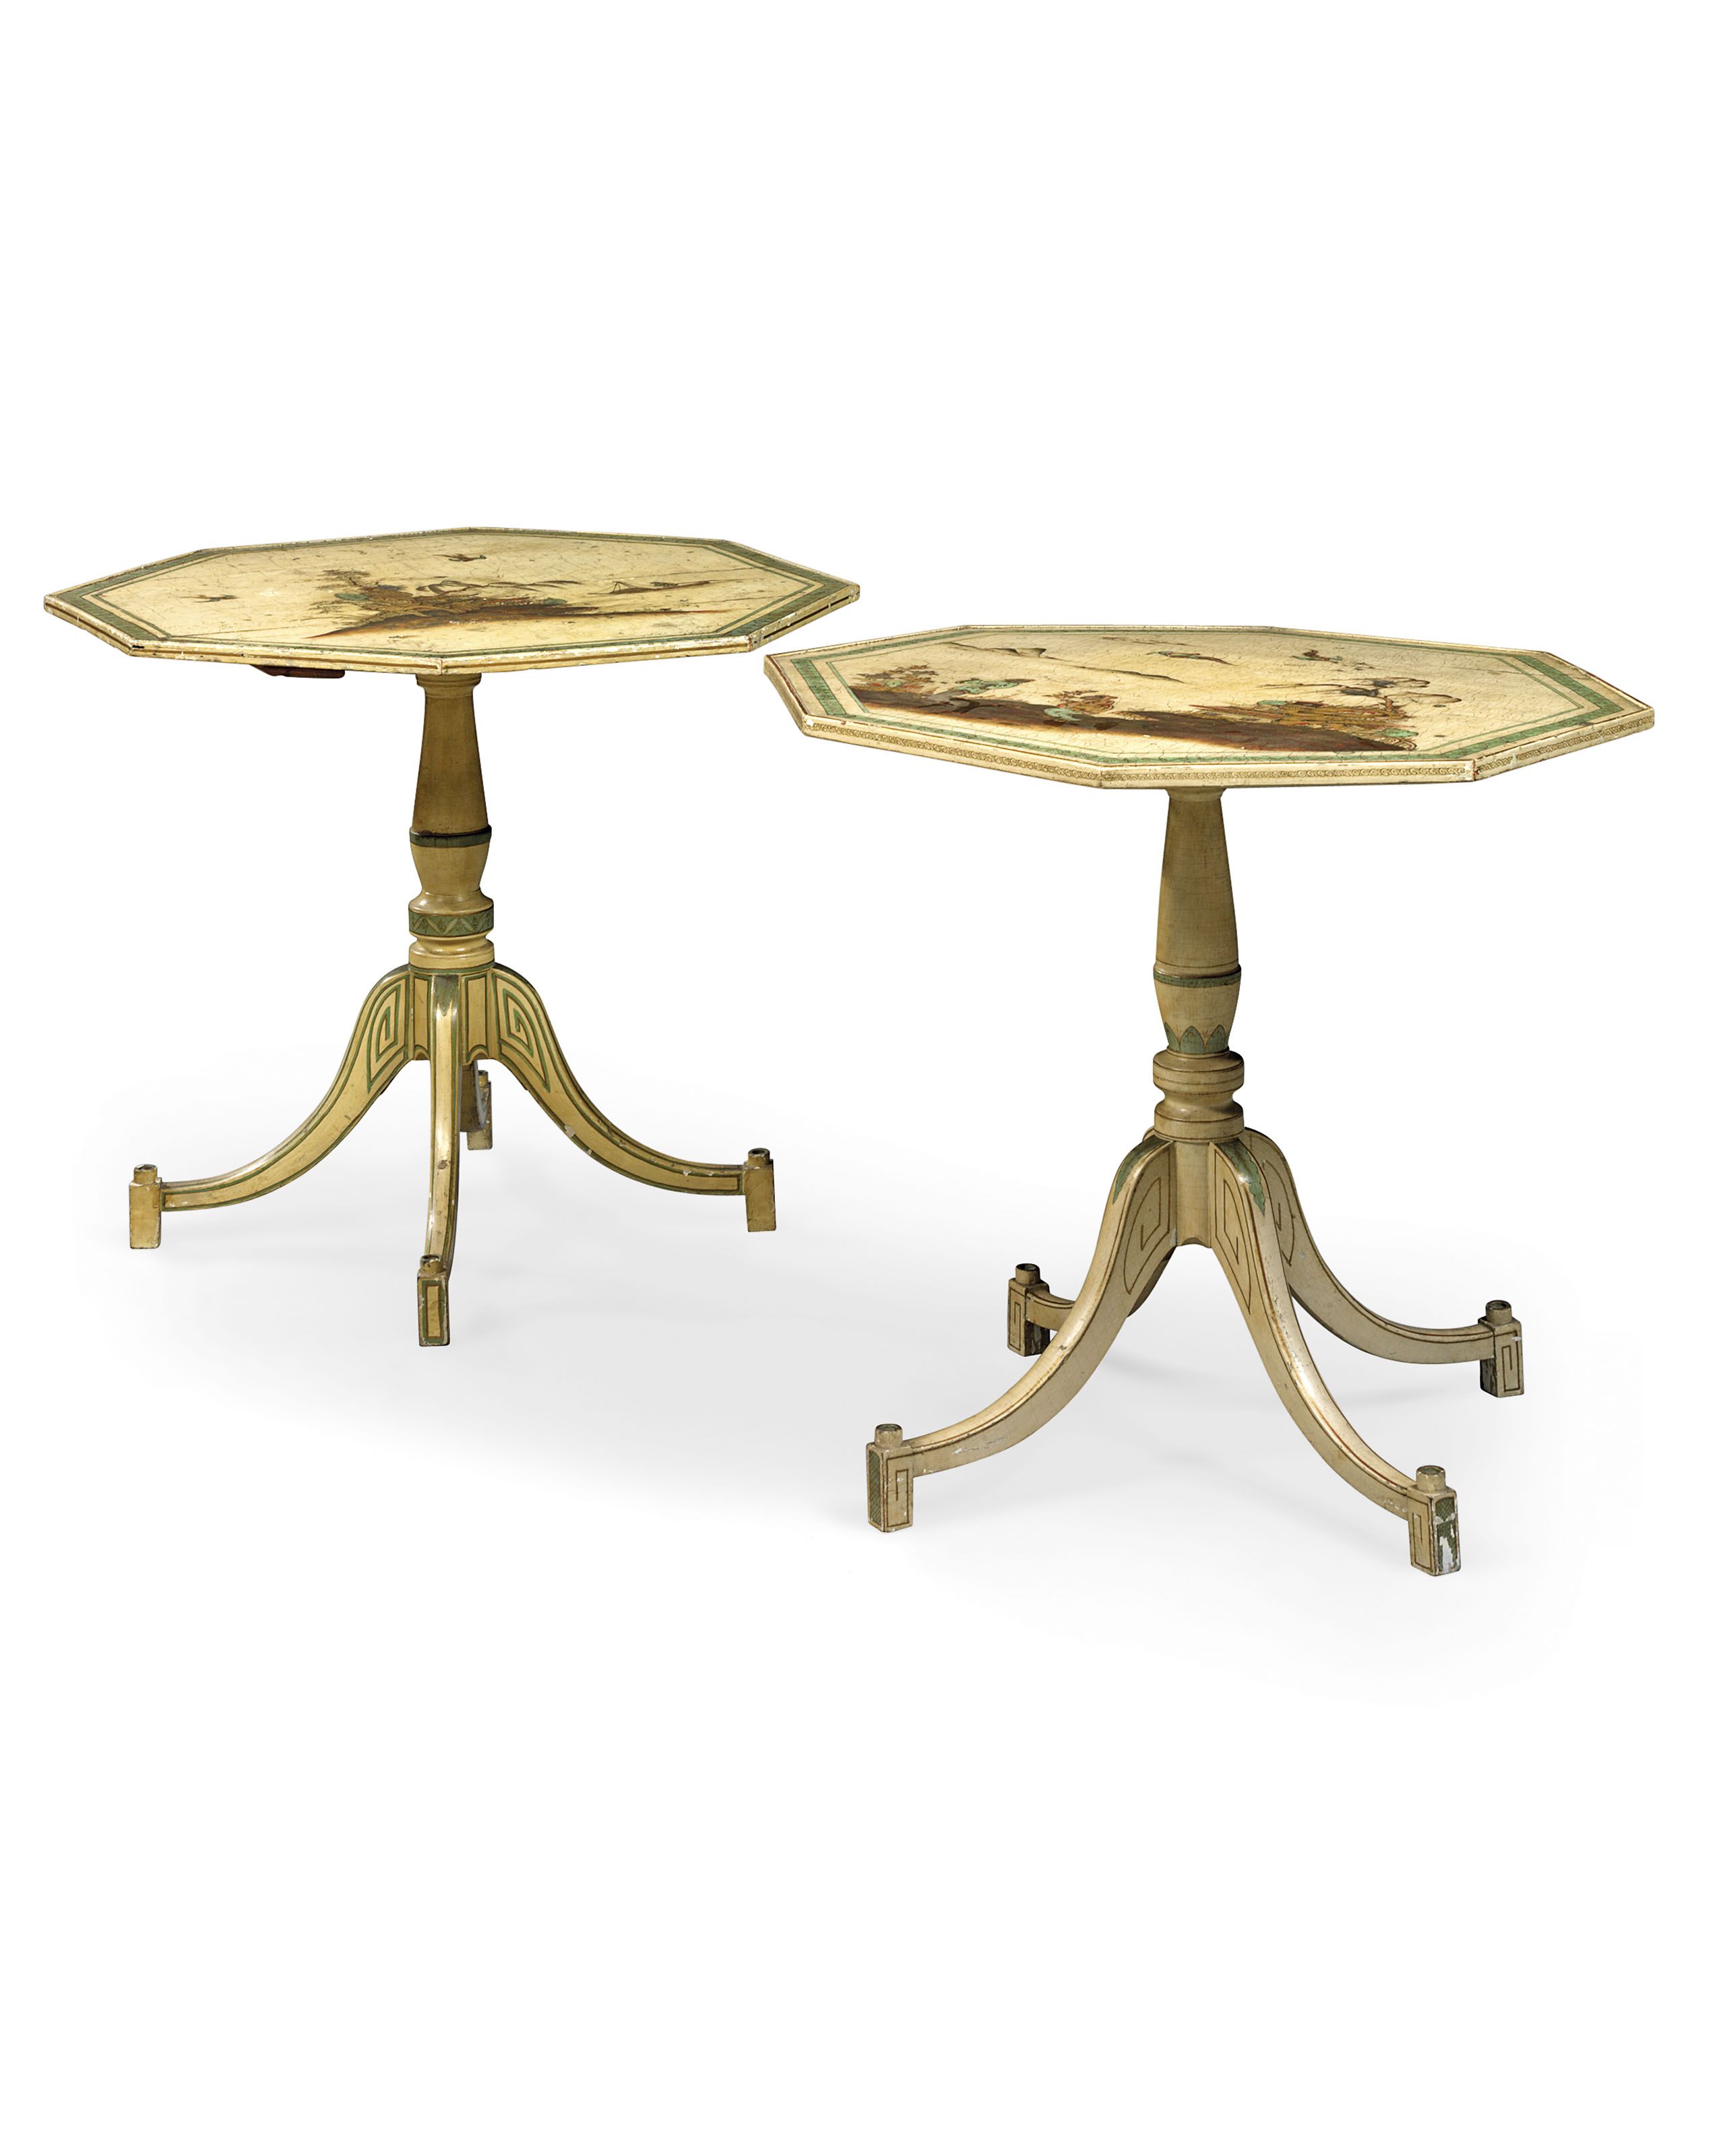 A NEAR PAIR OF LATE GEORGE III PARCEL-GILT POLYCHROME-JAPANNED WHITE-PAINTED OCCASIONAL TABLES